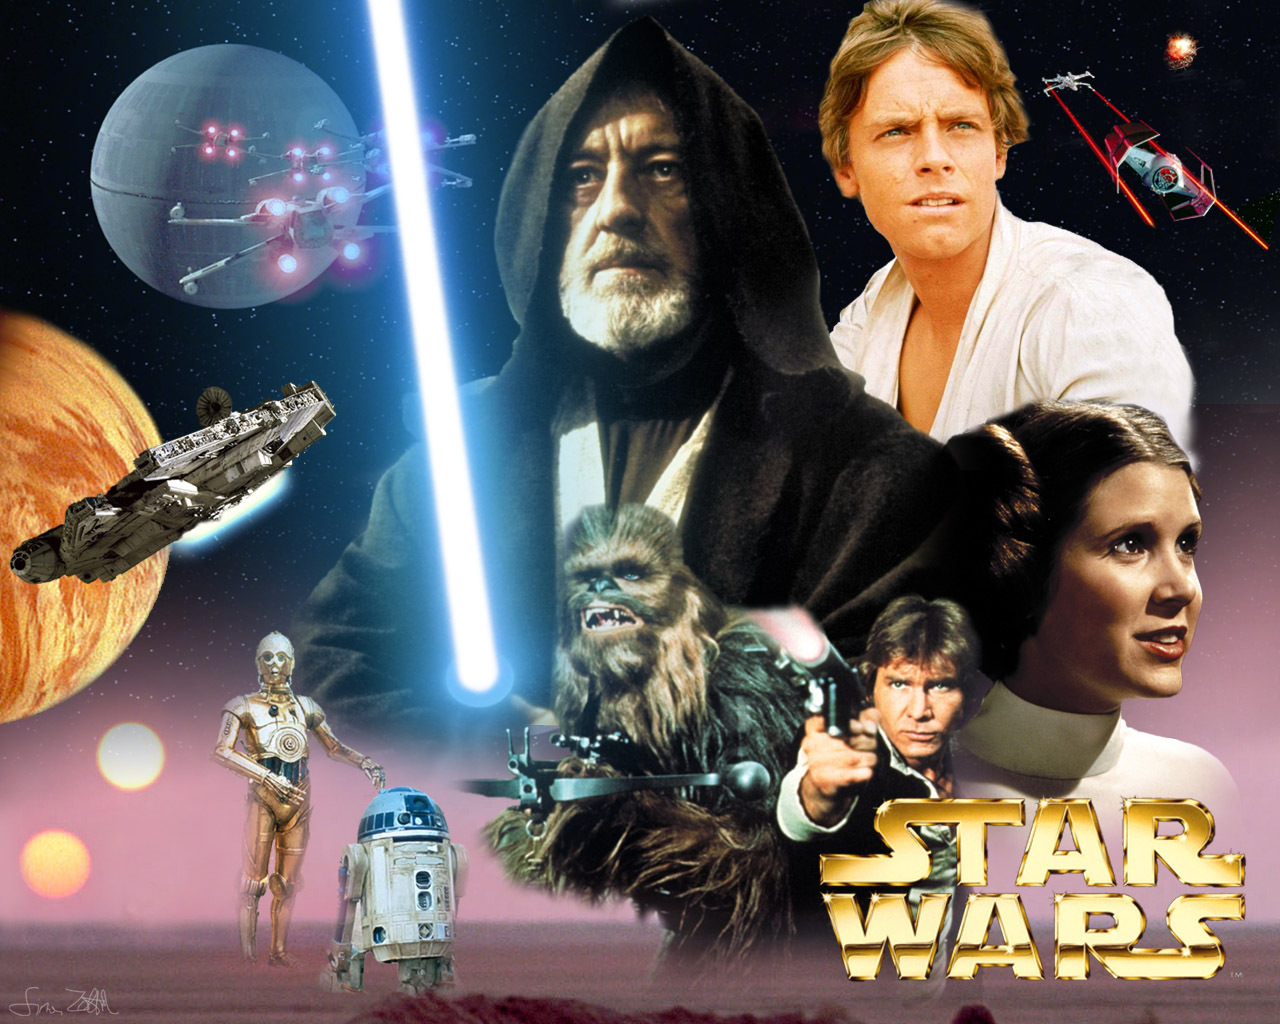 Star Wars Characters images Star Wars HD wallpaper and background ...